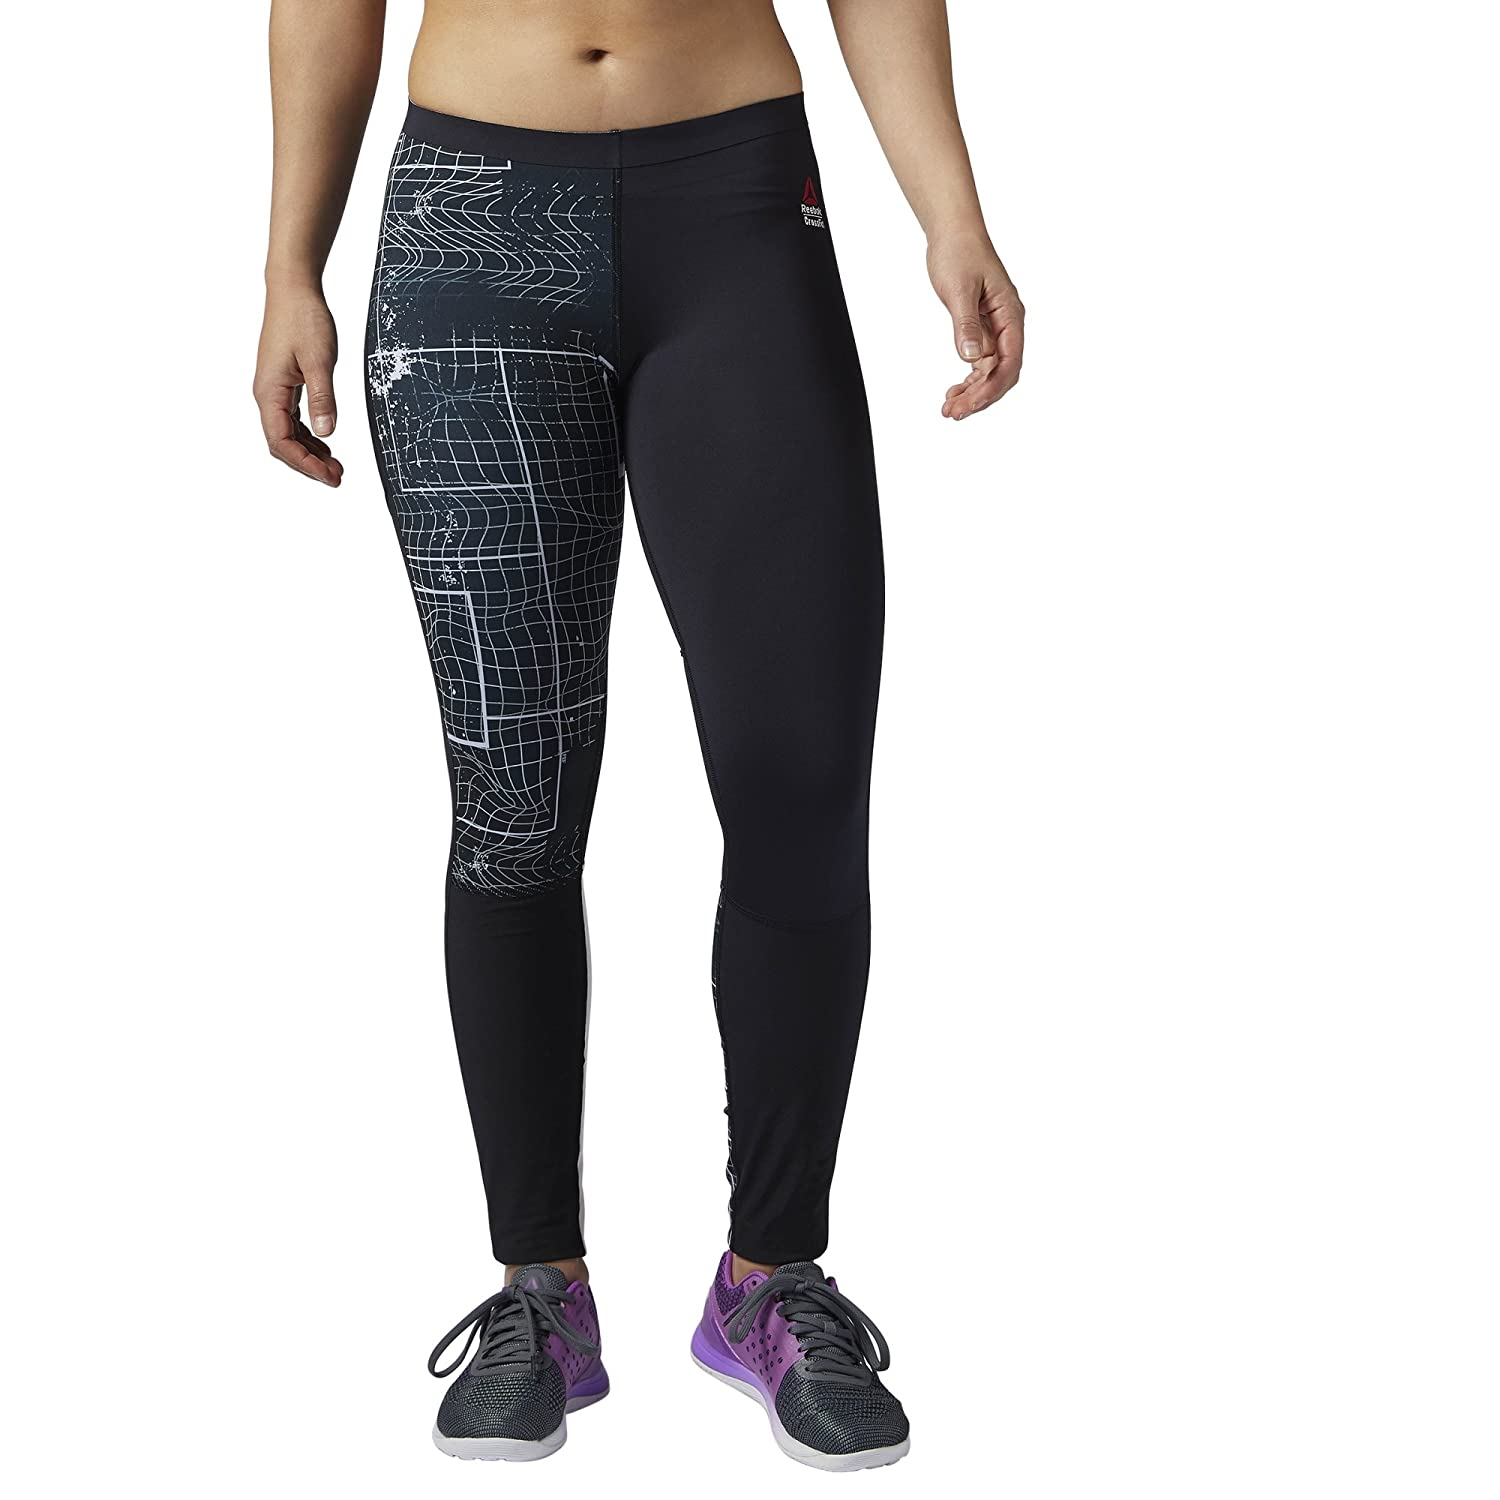 Reebok Women's Crossfit Compression Tight